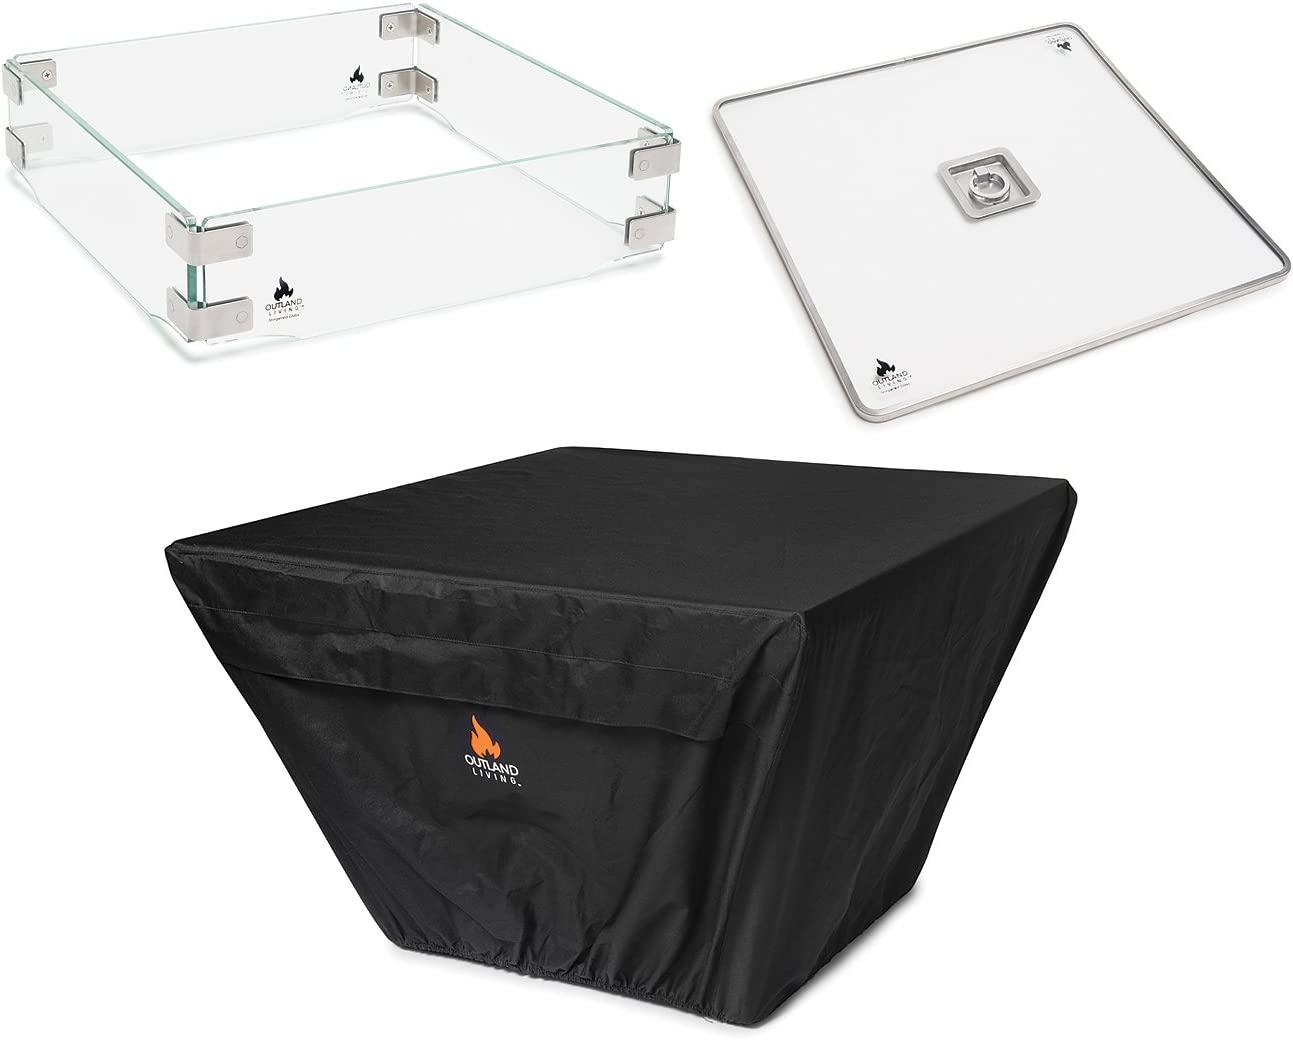 Outland Fire Table 3 Piece Square Accessory Set of Tempered Glass Lid Insert, Tempered Glass Wind Guard Fence, and UV Water Resistant Durable Cover for 36-Inch Square Series 410 Propane Fire Tables